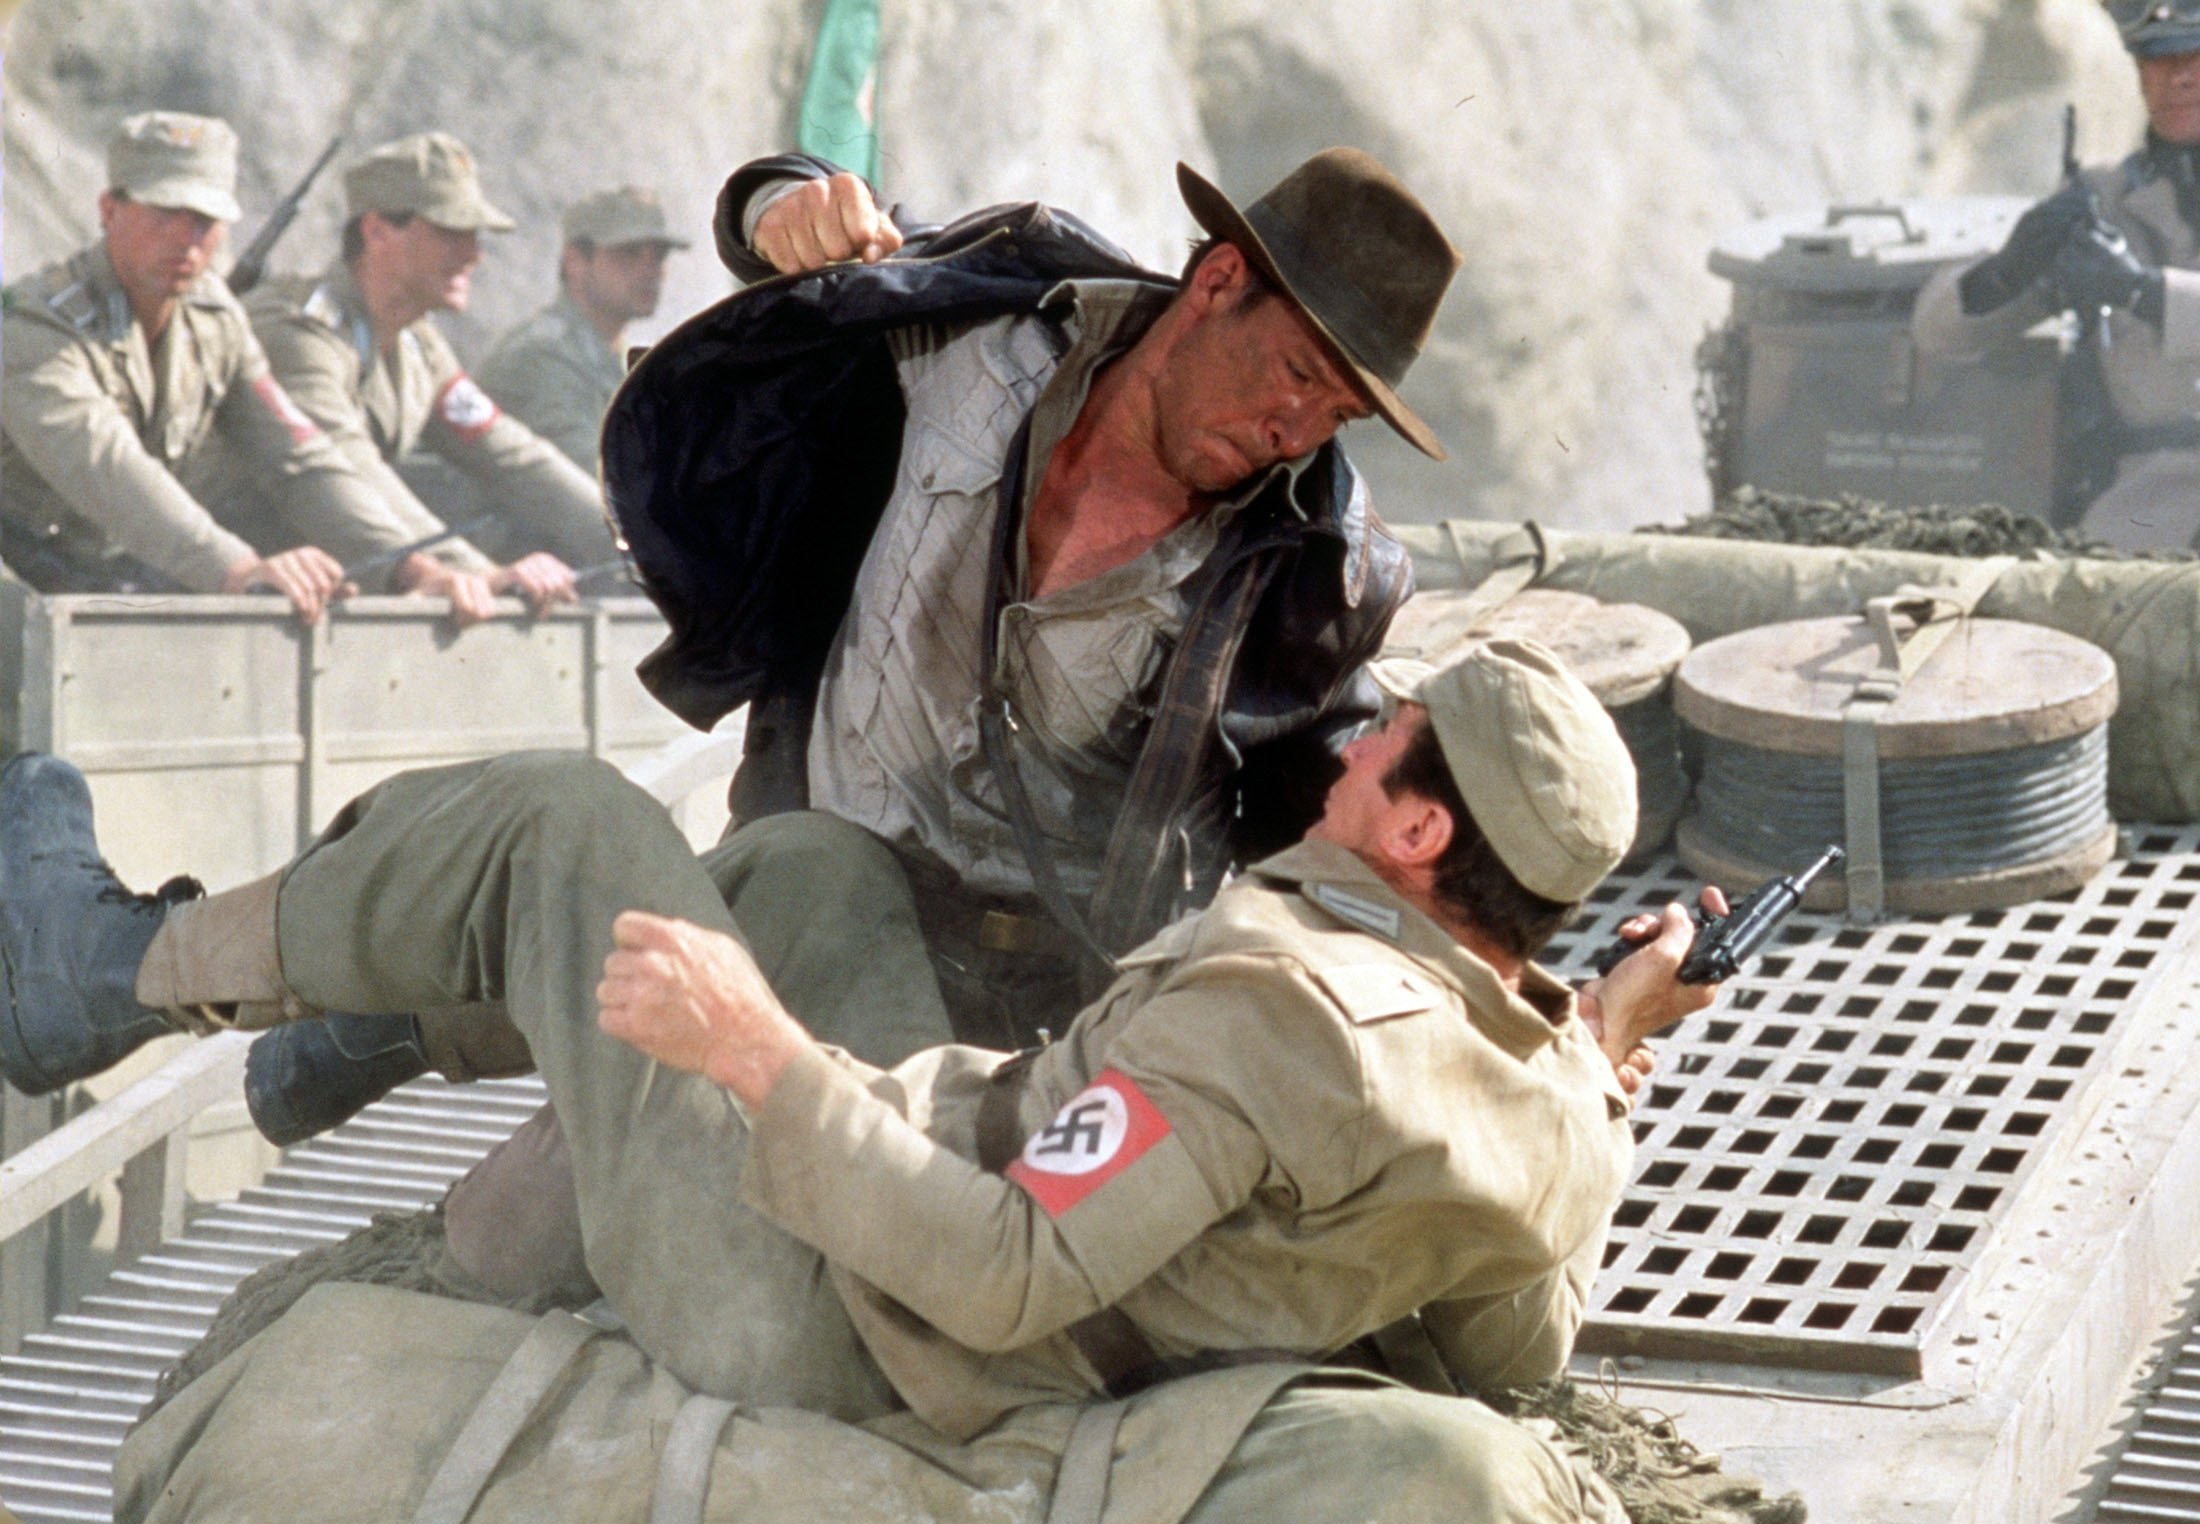 American actor Harrison Ford has a fistfight with a German soldier atop a moving tank in a scene from the film 'Indiana Jones and the Last Crusade', released in 1989. (Getty Images)